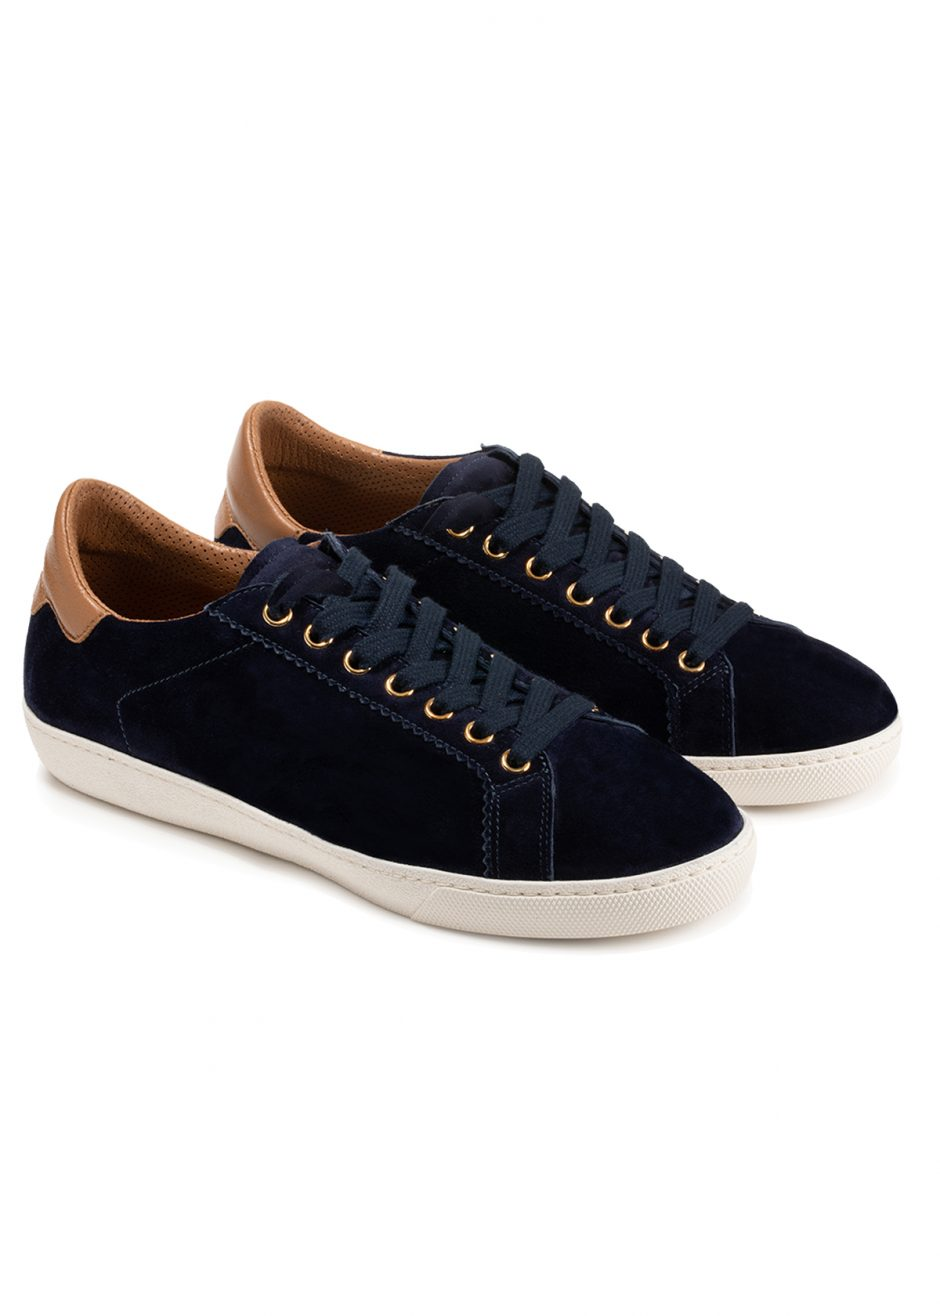 Jackie – Sneakers blue cachemire-effect suede leather with cognac profile